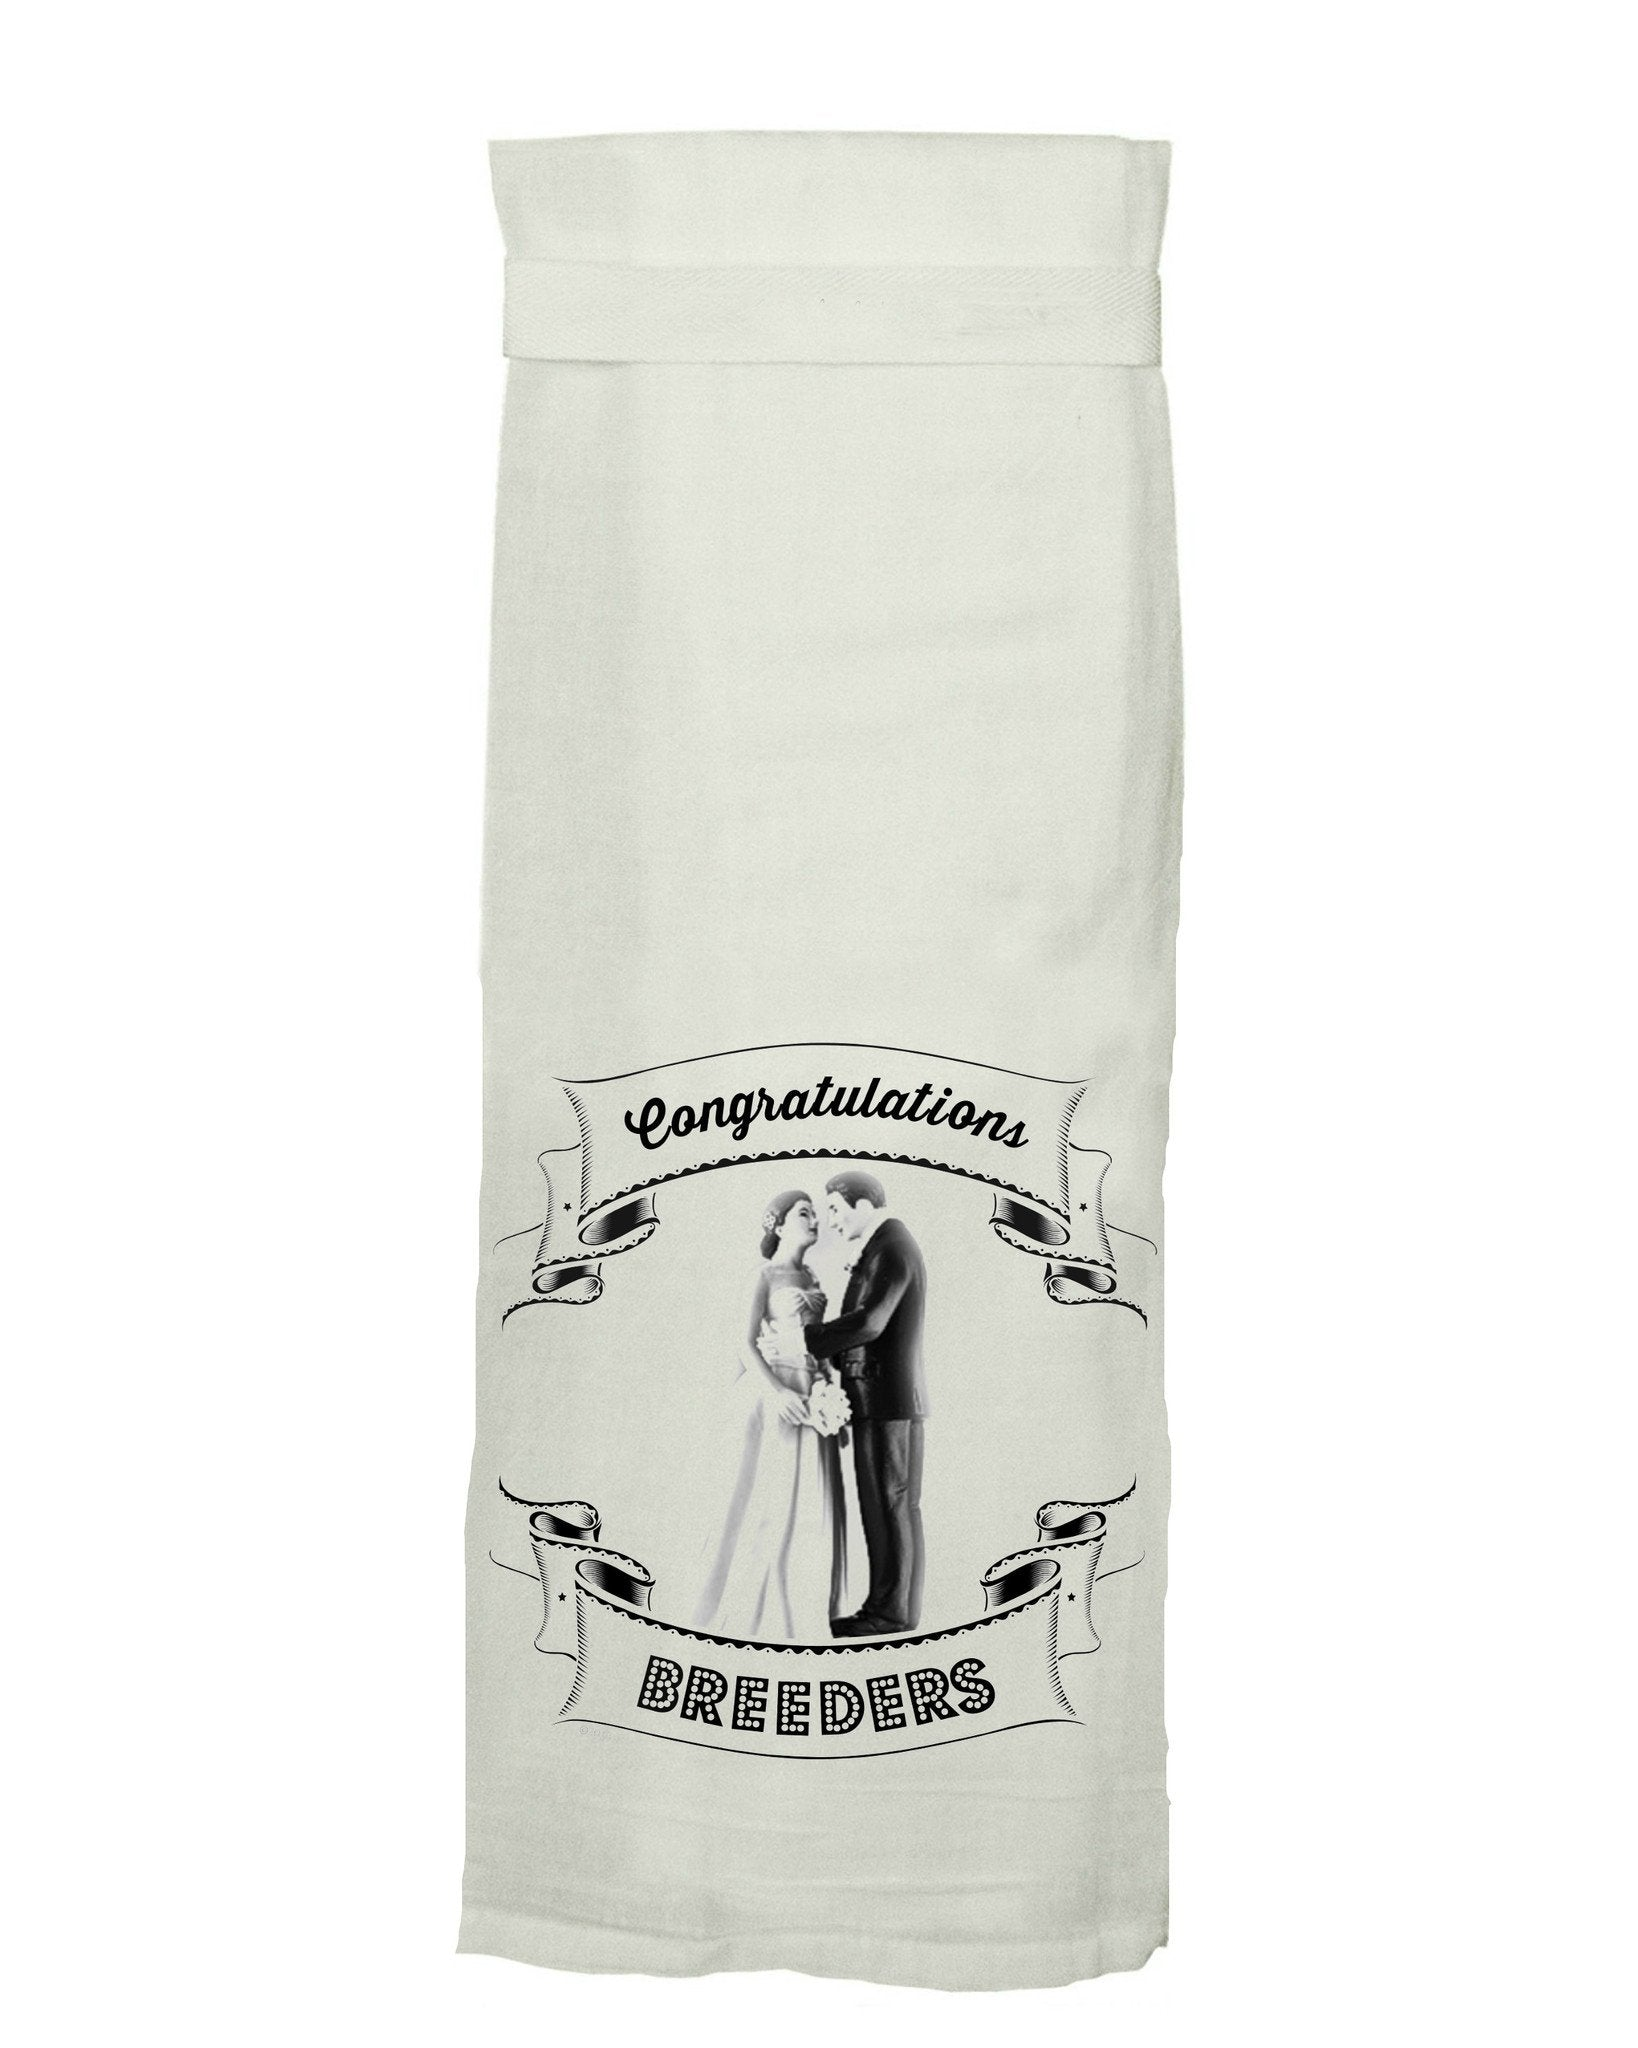 Congratulations Breeders Tea Towel